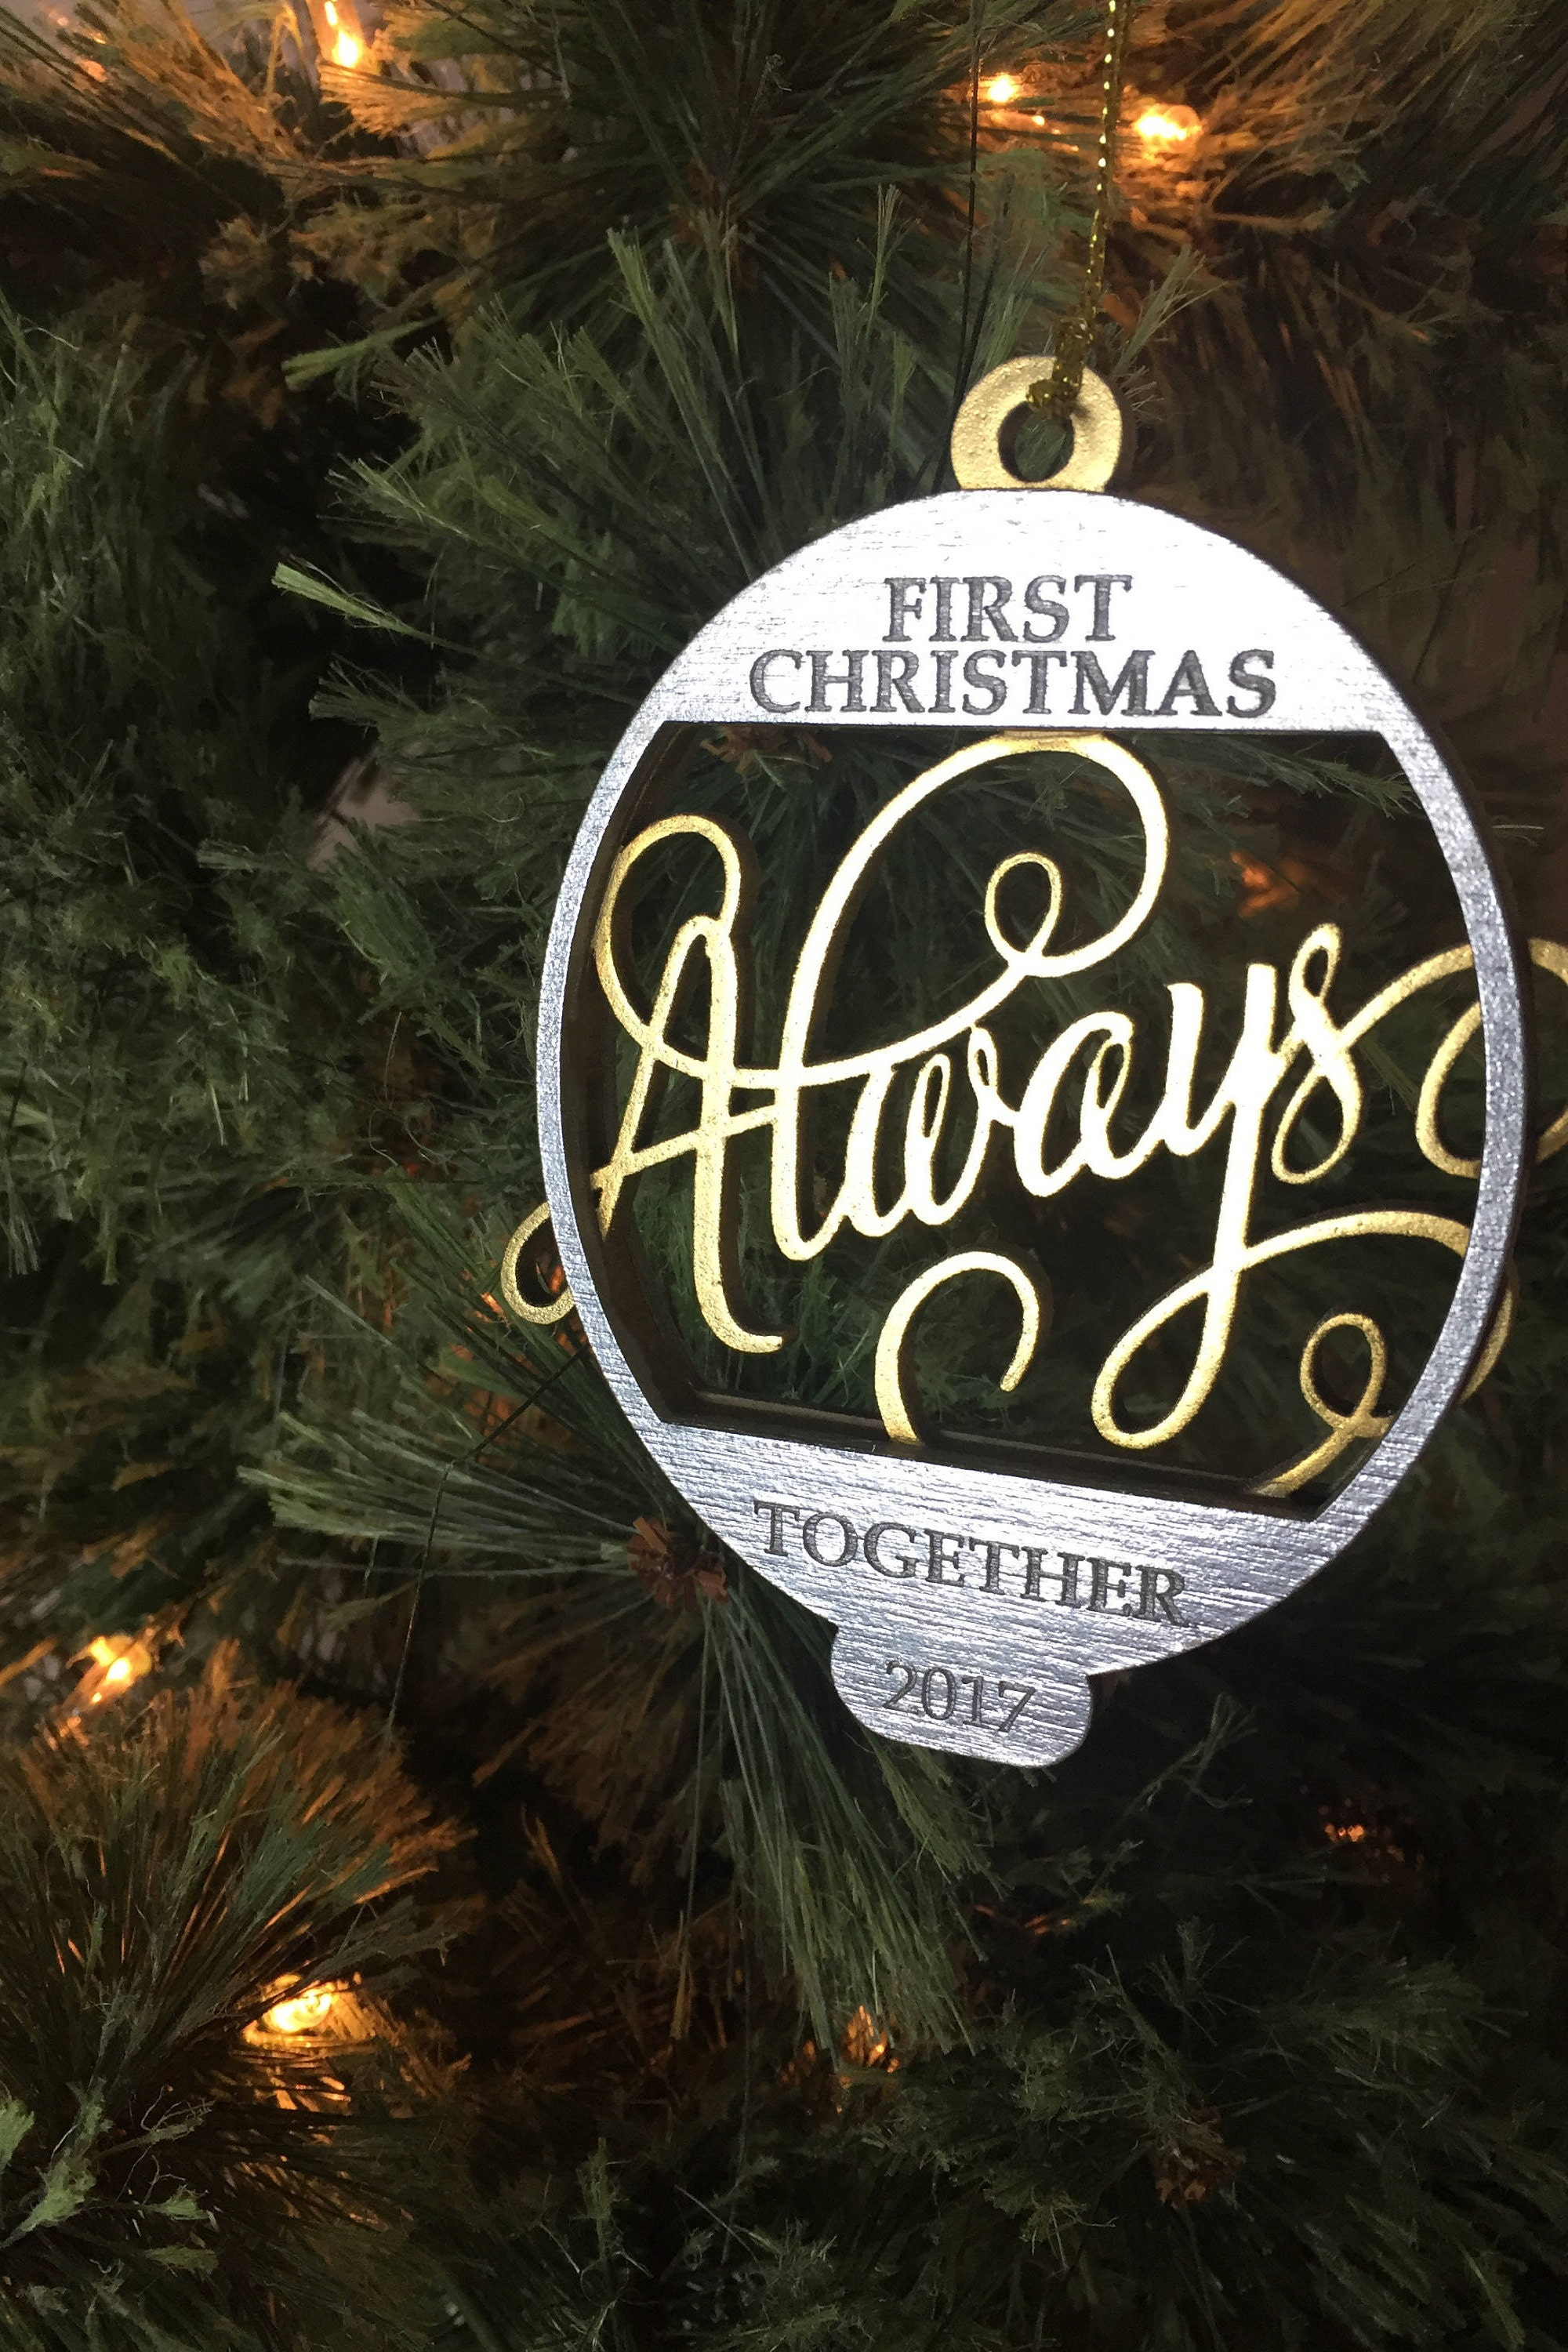 always first christmas together christmas tree ornament free gift box - Always Christmas